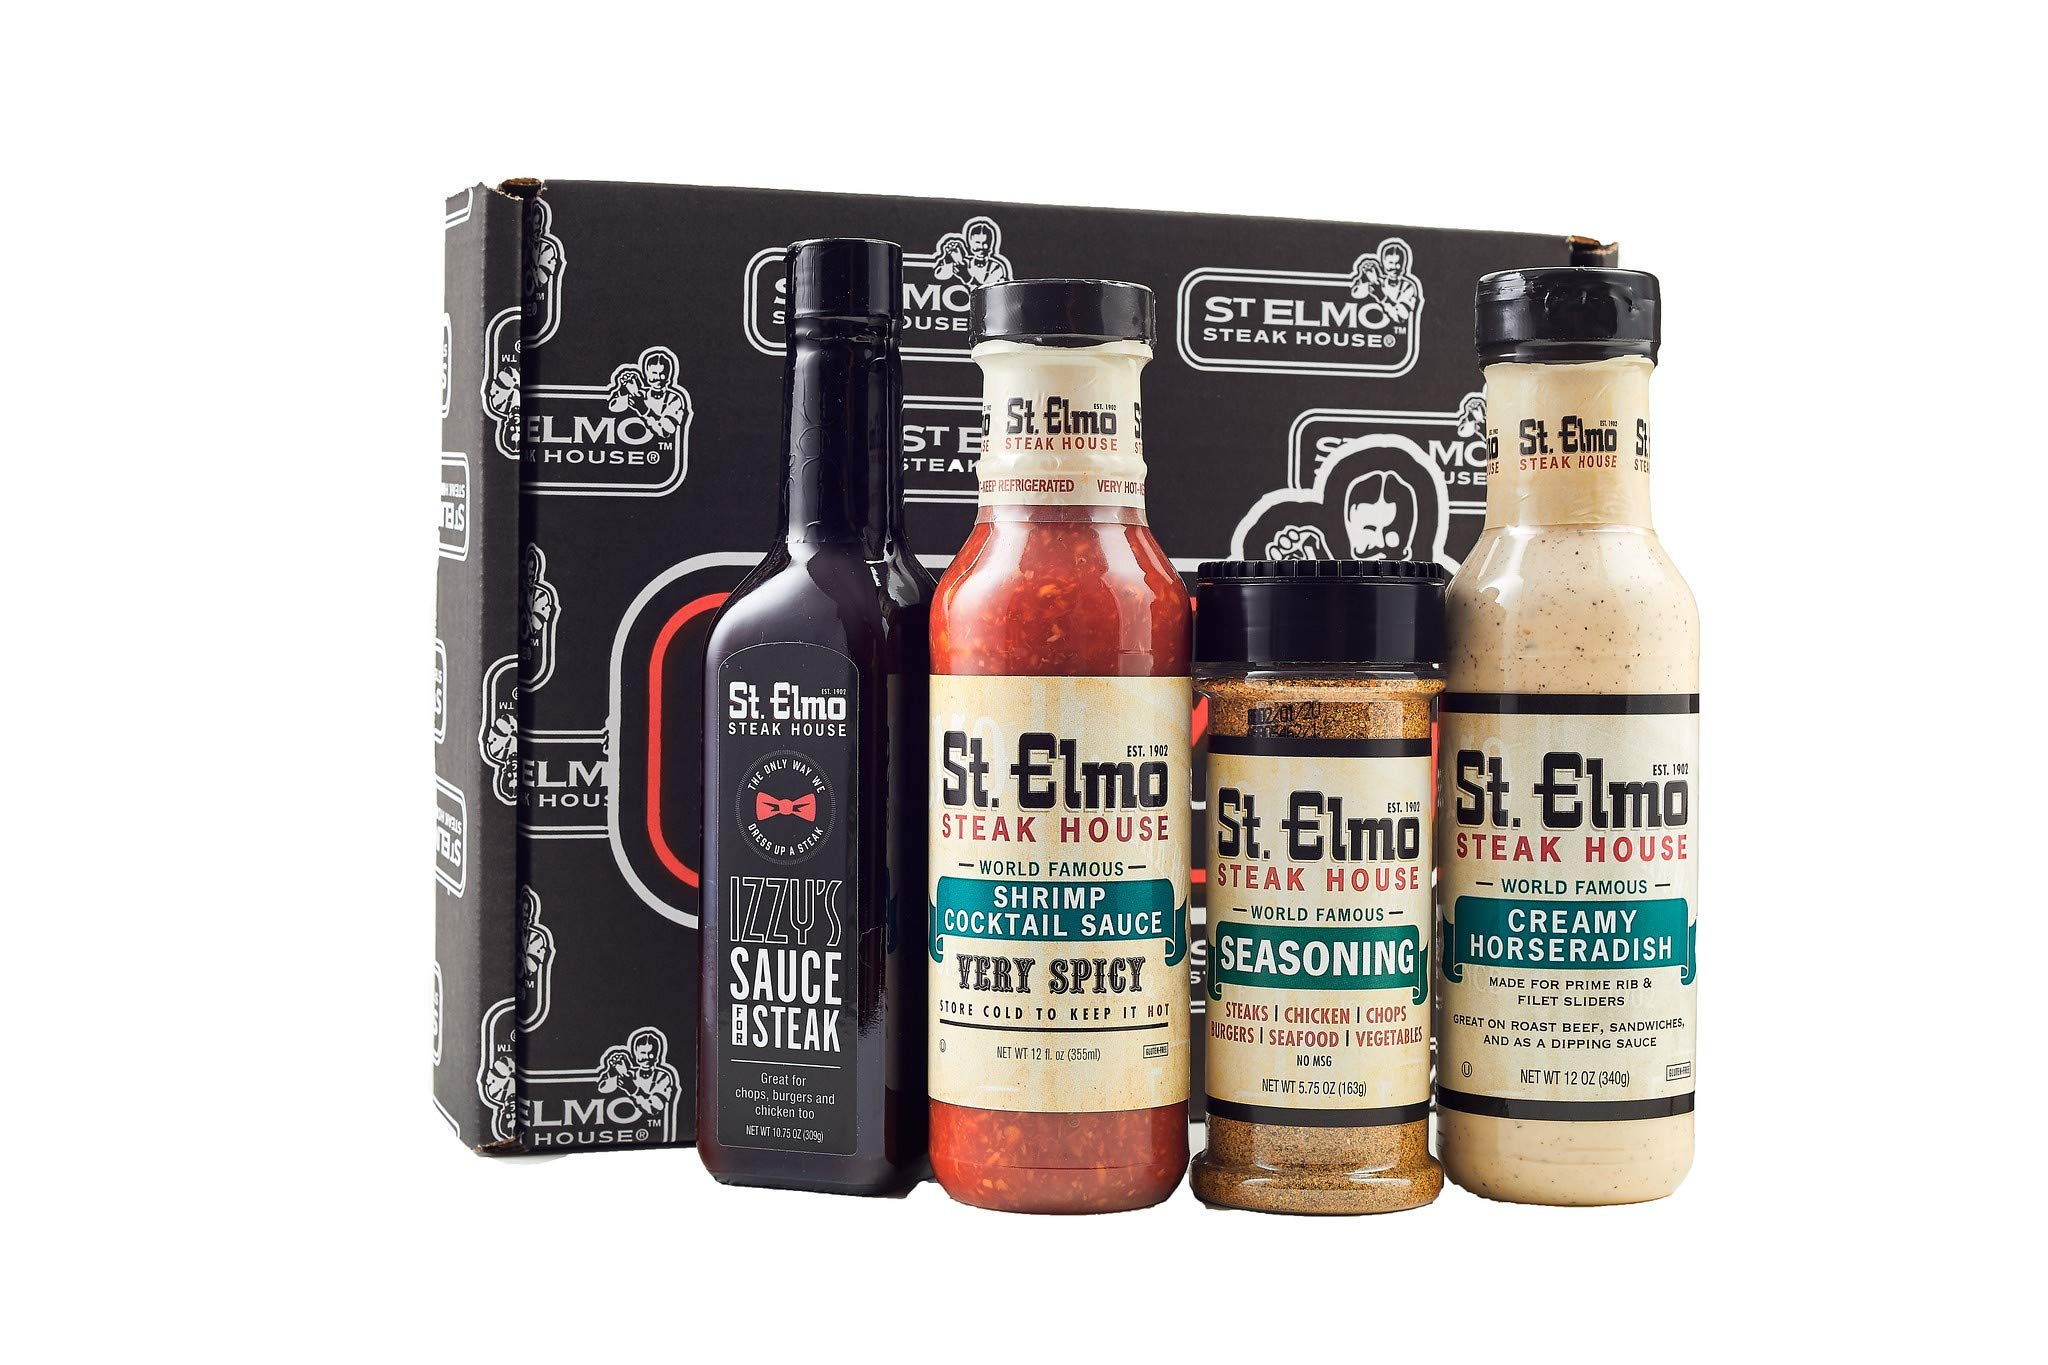 St. Elmo Steak House Gift Box